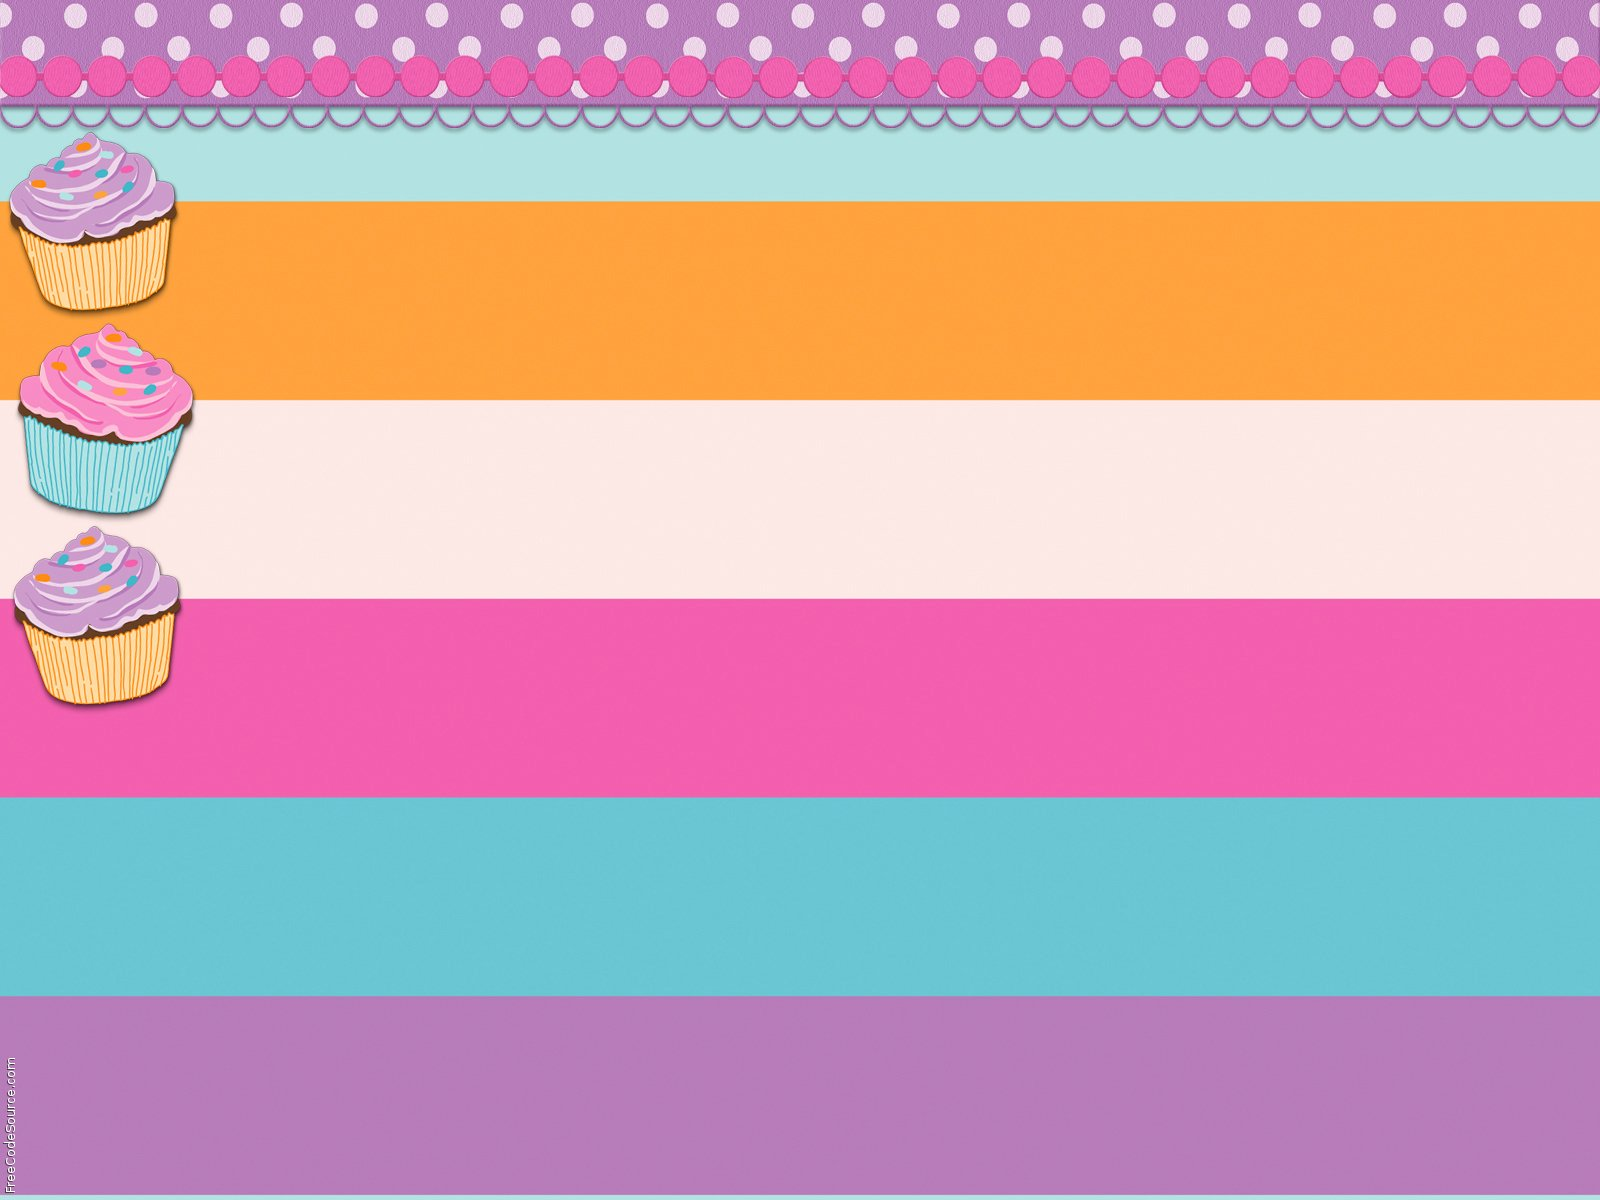 Cute Cupcake Background - WallpaperSafari